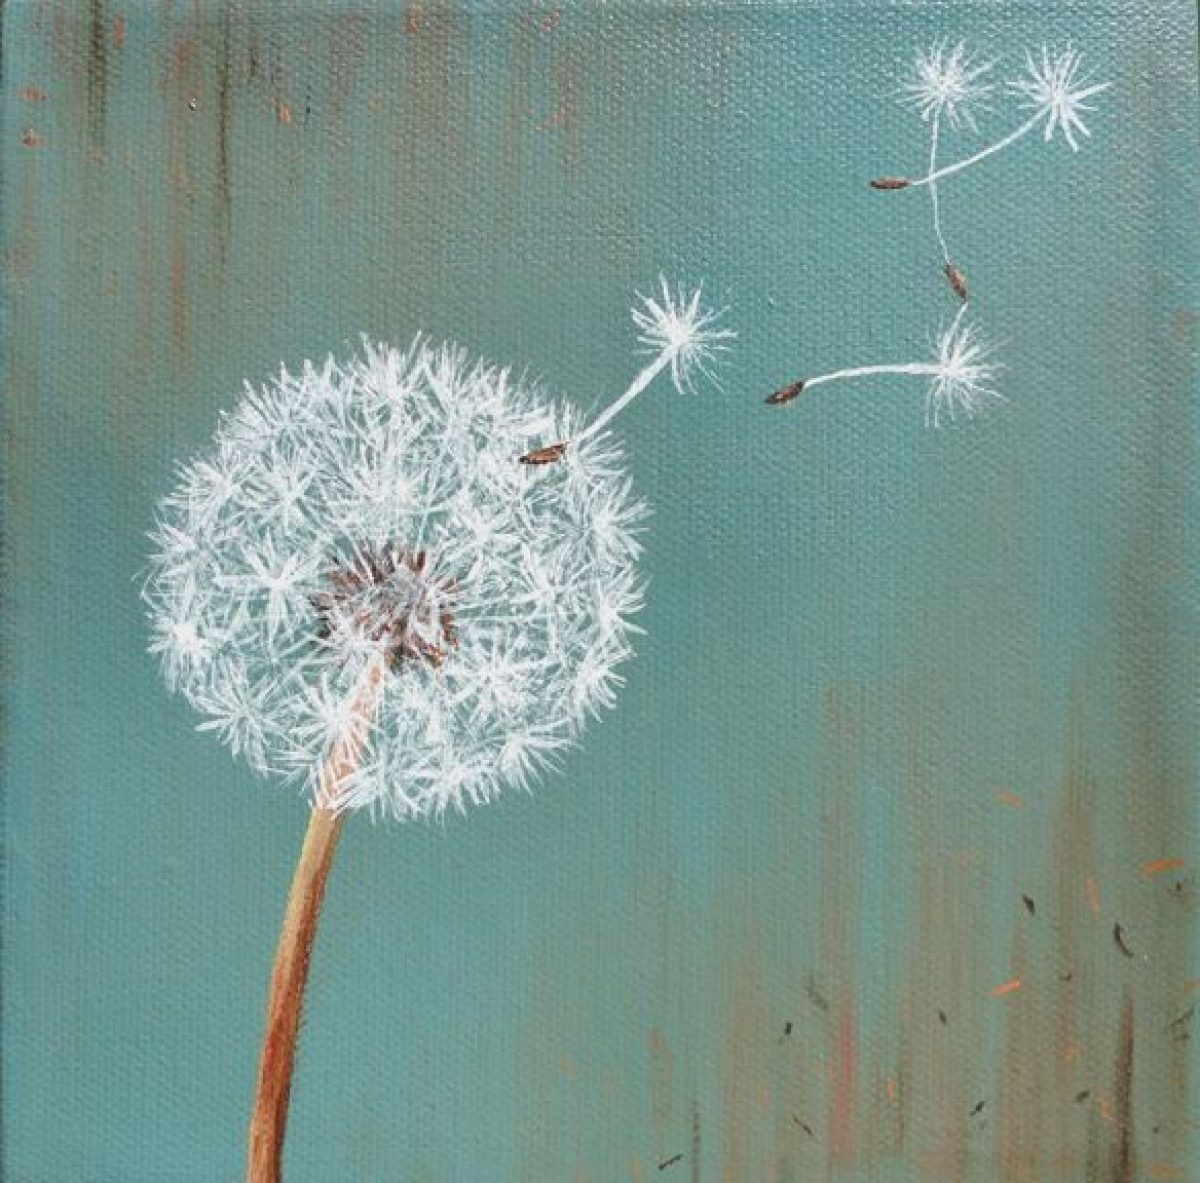 Dandelions & Daydreams